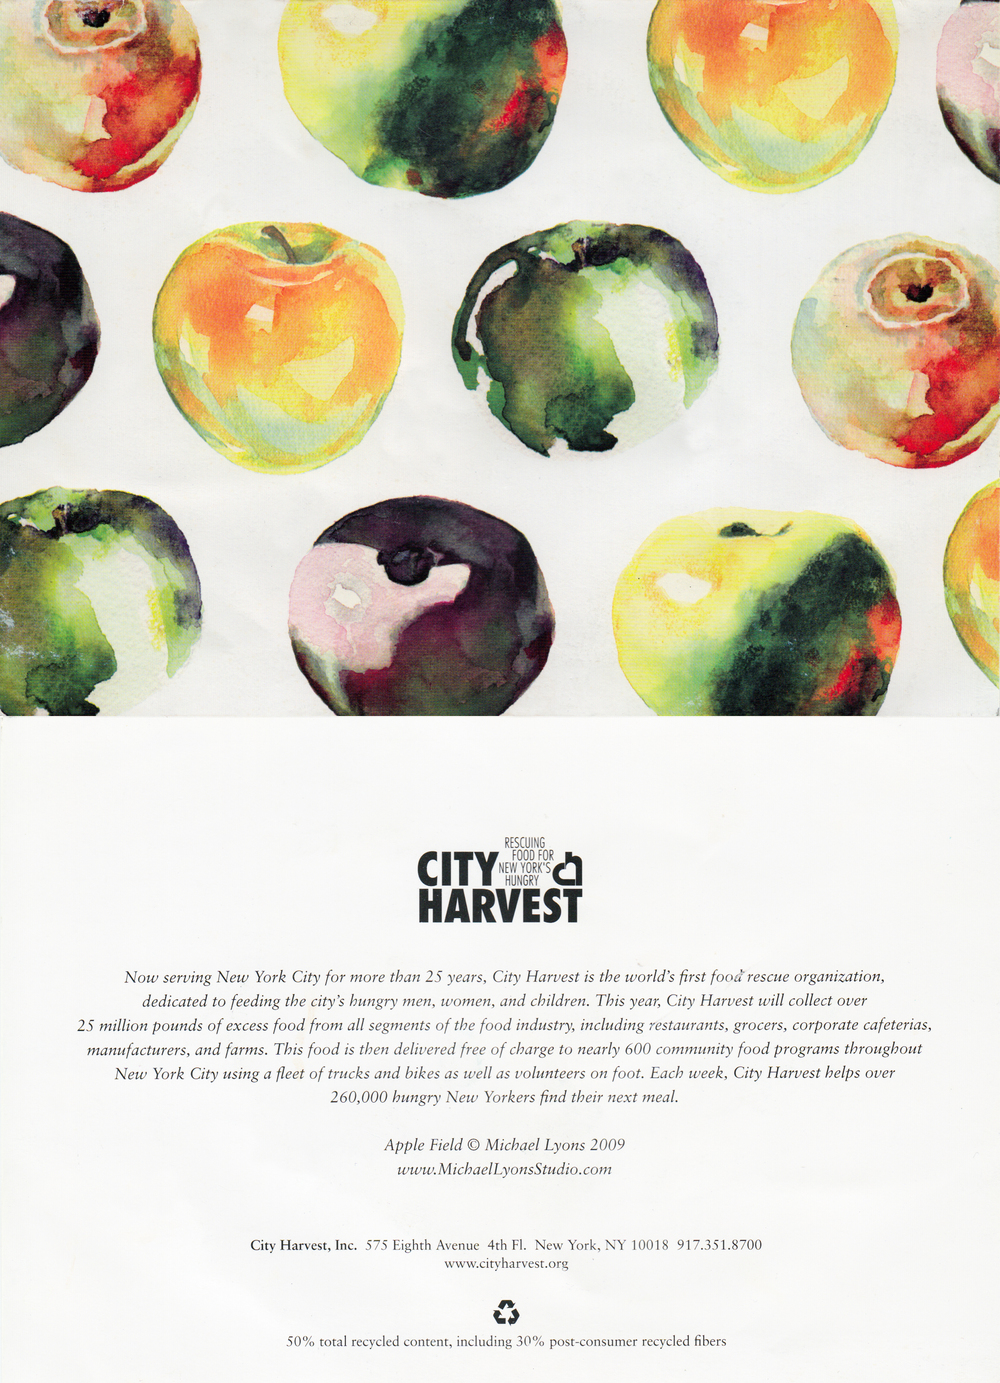 City Harvest Illustration.jpg